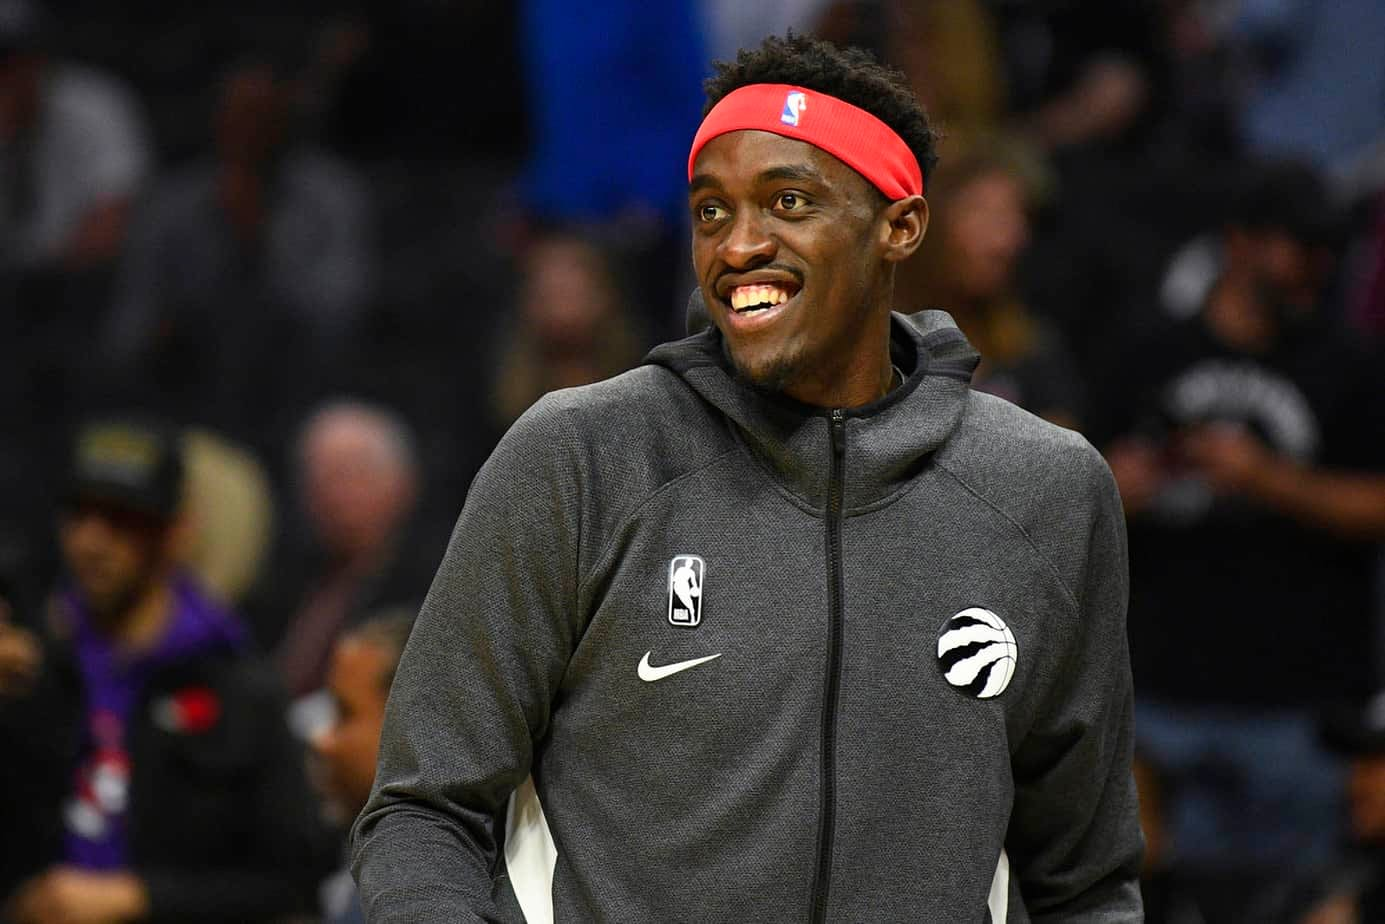 Al Walsh gives top NBA Dream11 picks like De'Aaron Fox for daily fantasy basketball lineups for Thursday, April 8 on the Dream11 app.